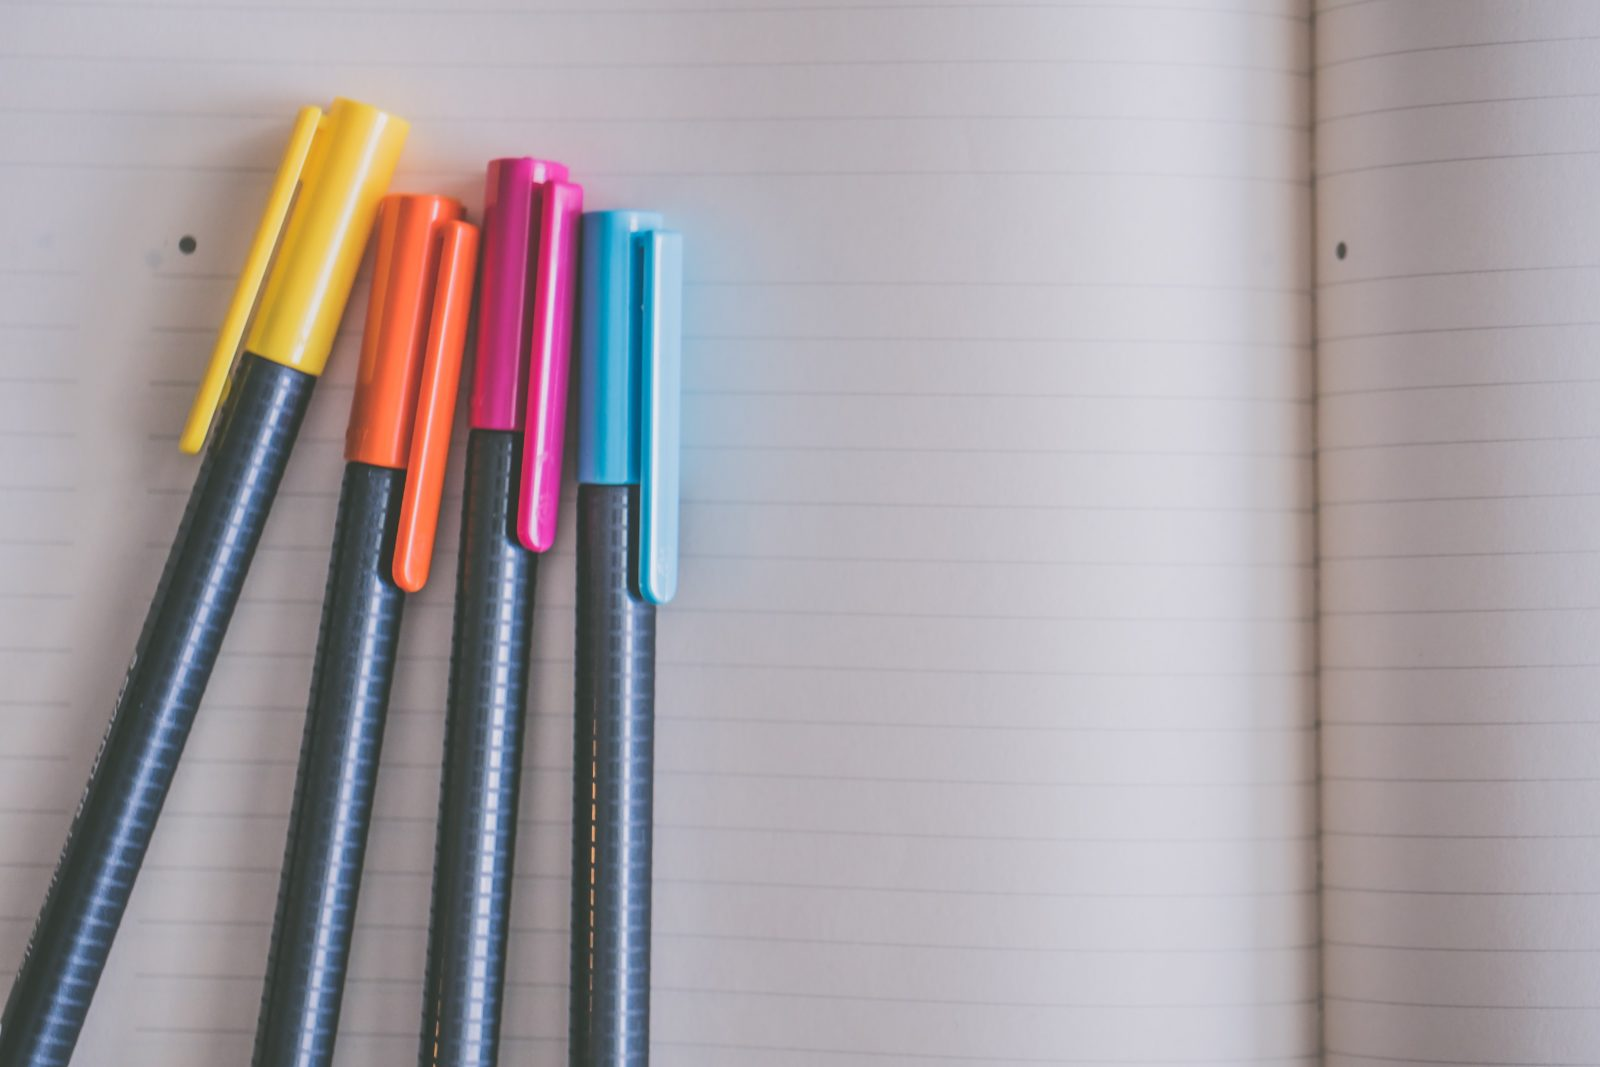 Coloured Editing Pens on Lined Notepaper